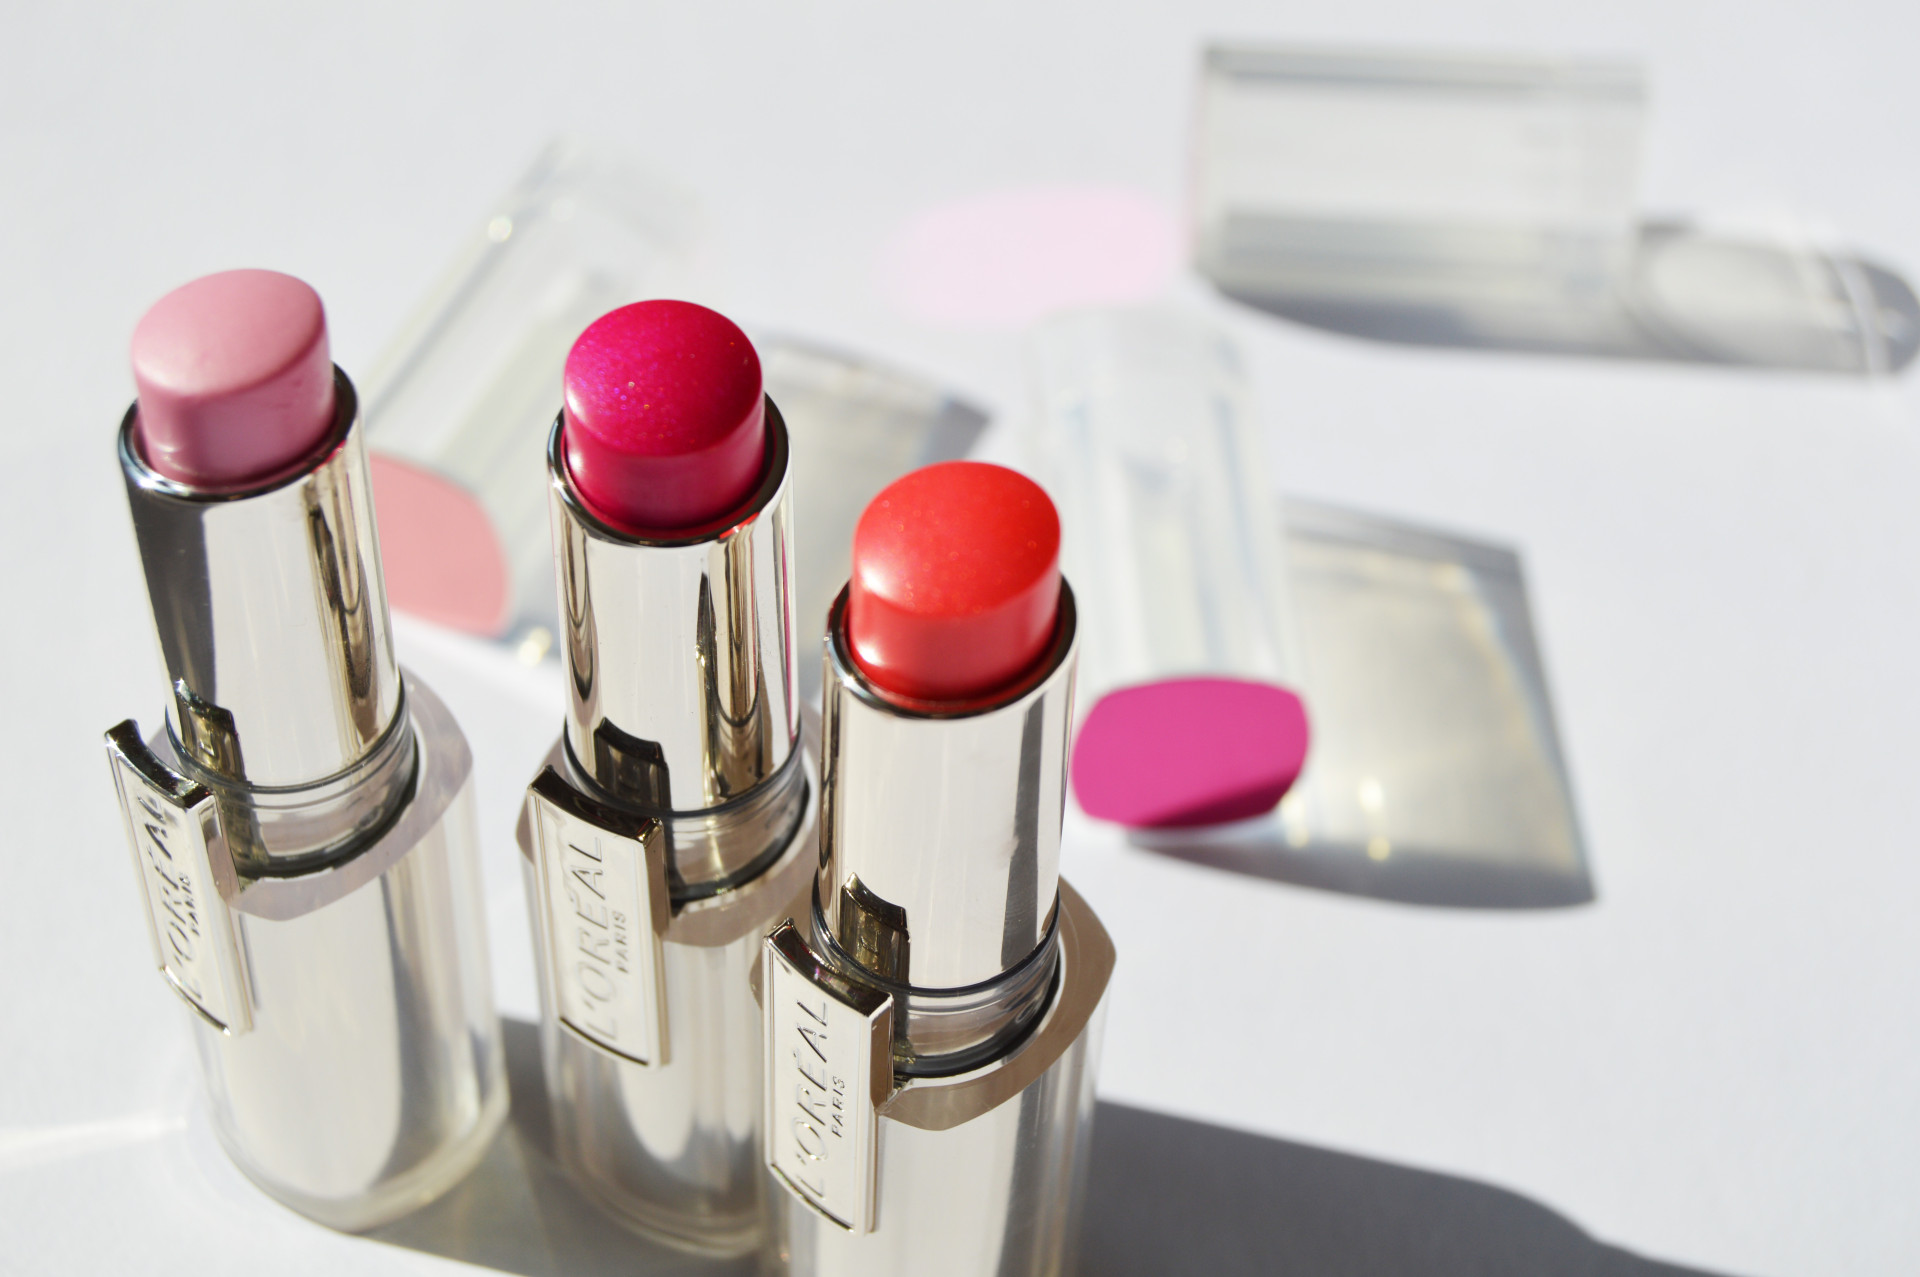 L'Oréal Rouge Caresse Lipstick Review and swatches